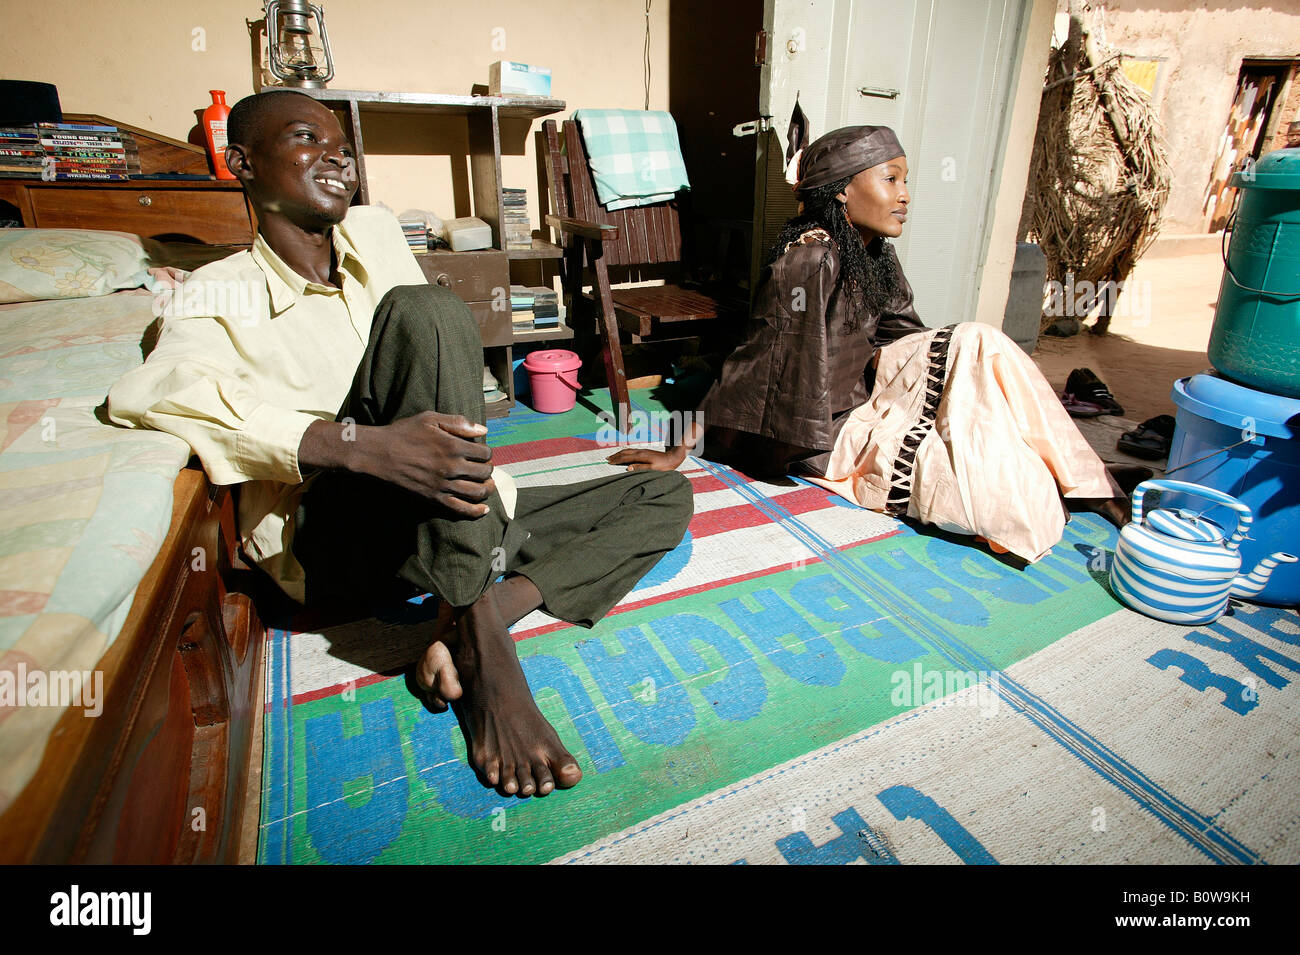 Man and woman sitting in a living room, Garoua, Cameroon, Africa - Stock Image